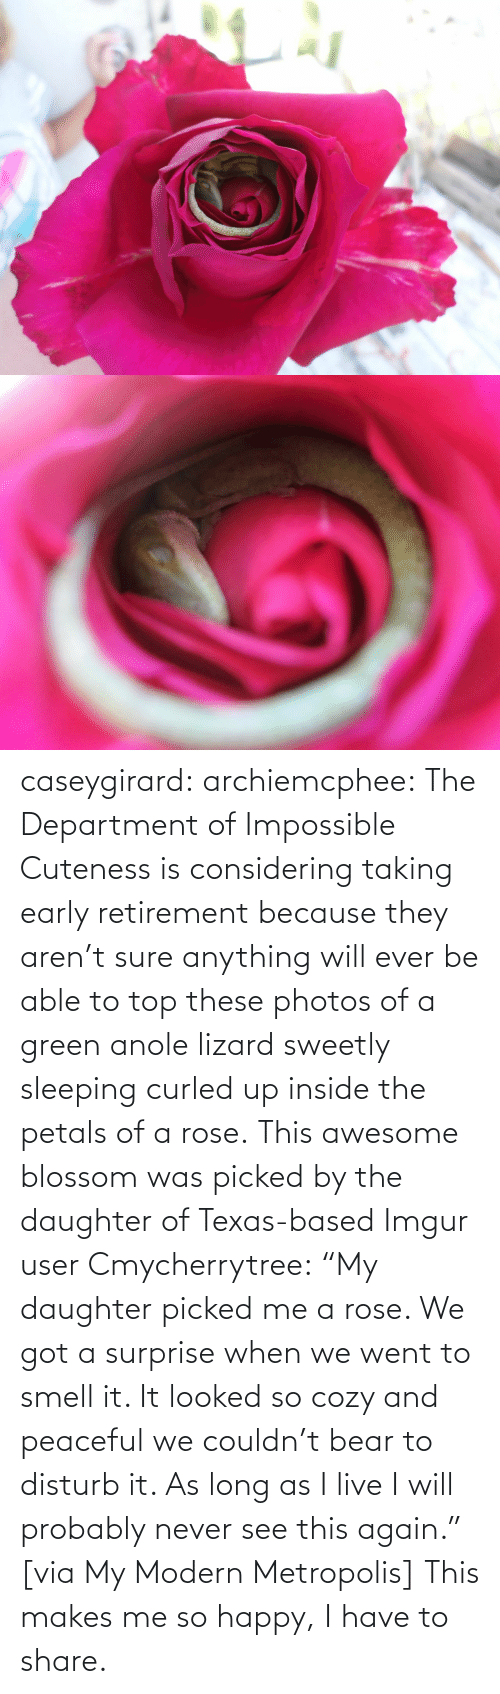 "So Happy: caseygirard:  archiemcphee:   The Department of Impossible Cuteness is considering taking early retirement because they aren't sure anything will ever be able to top these photos of a green anole lizard sweetly sleeping curled up inside the petals of a rose. This awesome blossom was picked by the daughter of Texas-based Imgur user Cmycherrytree: ""My daughter picked me a rose. We got a surprise when we went to smell it. It looked so cozy and peaceful we couldn't bear to disturb it. As long as I live I will probably never see this again."" [via My Modern Metropolis]   This makes me so happy, I have to share."